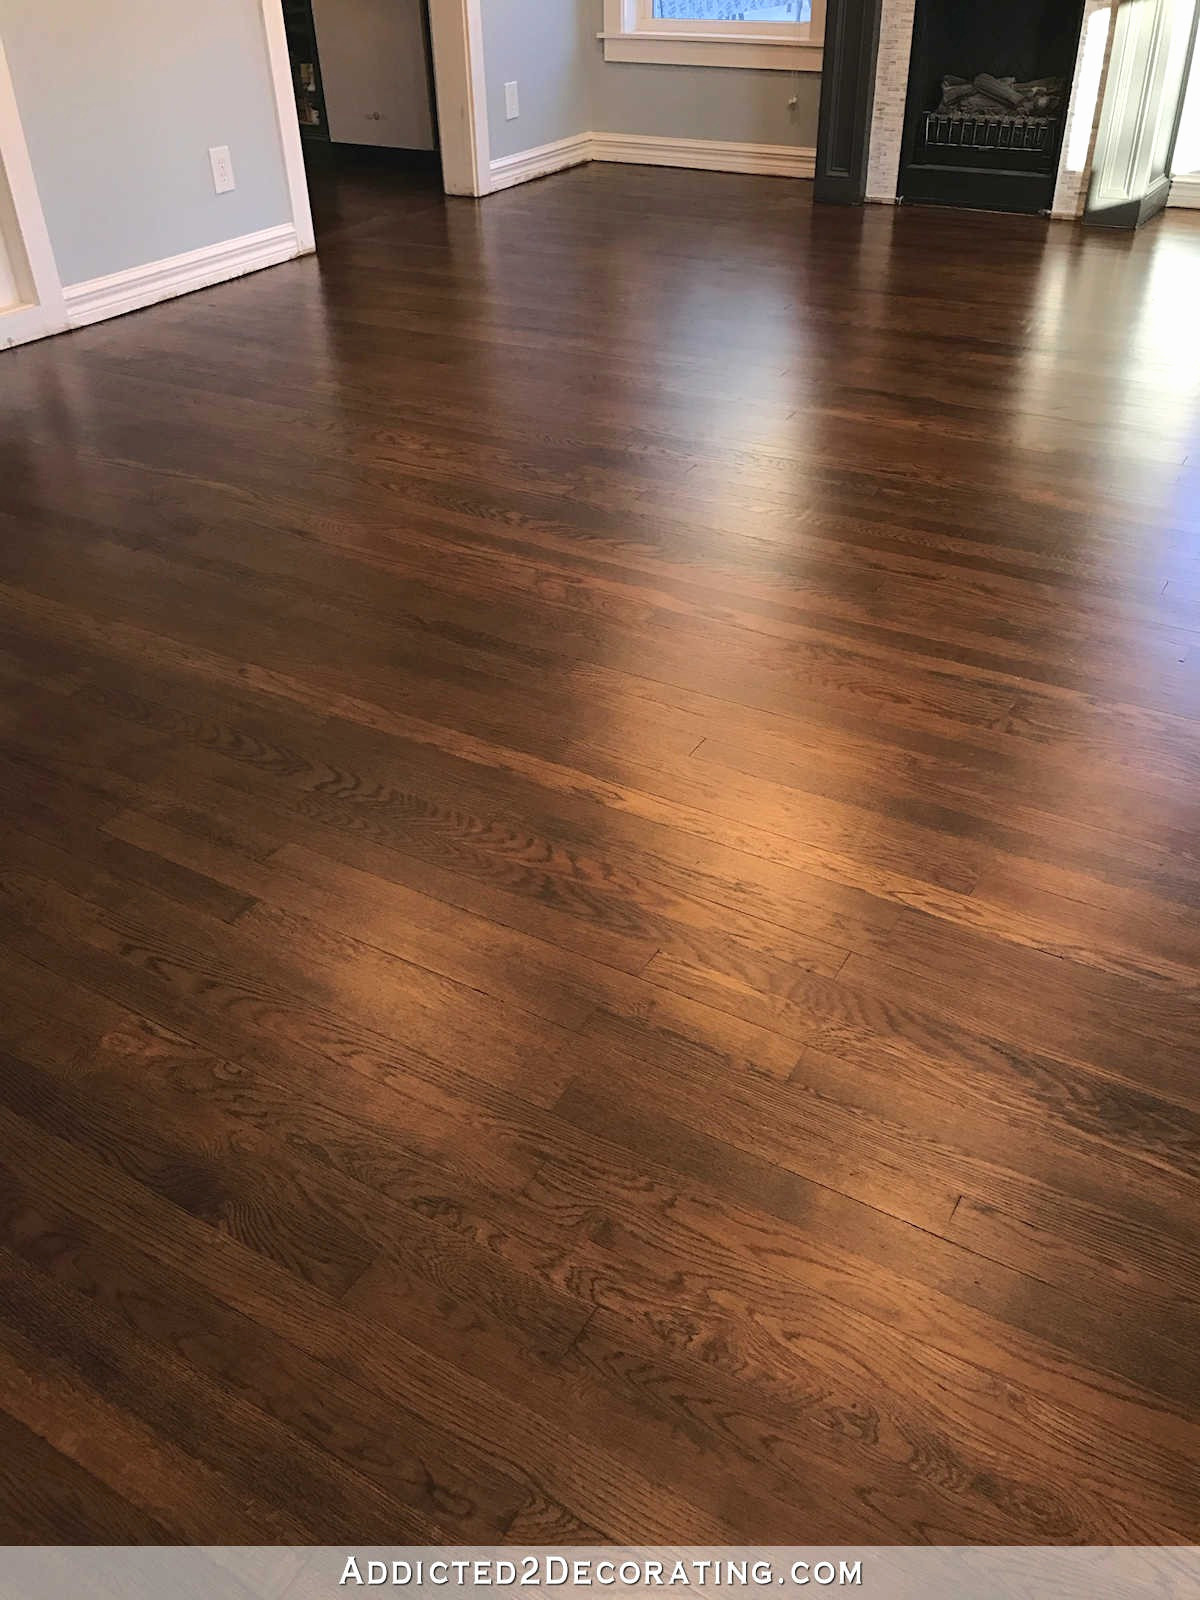 hardwood floor refinishing san francisco ca of hardwood floors san francisco sandblasted 2 x 4 and brick floor with hardwood floors san francisco 50 awesome hardwood floors san francisco pics 50 s